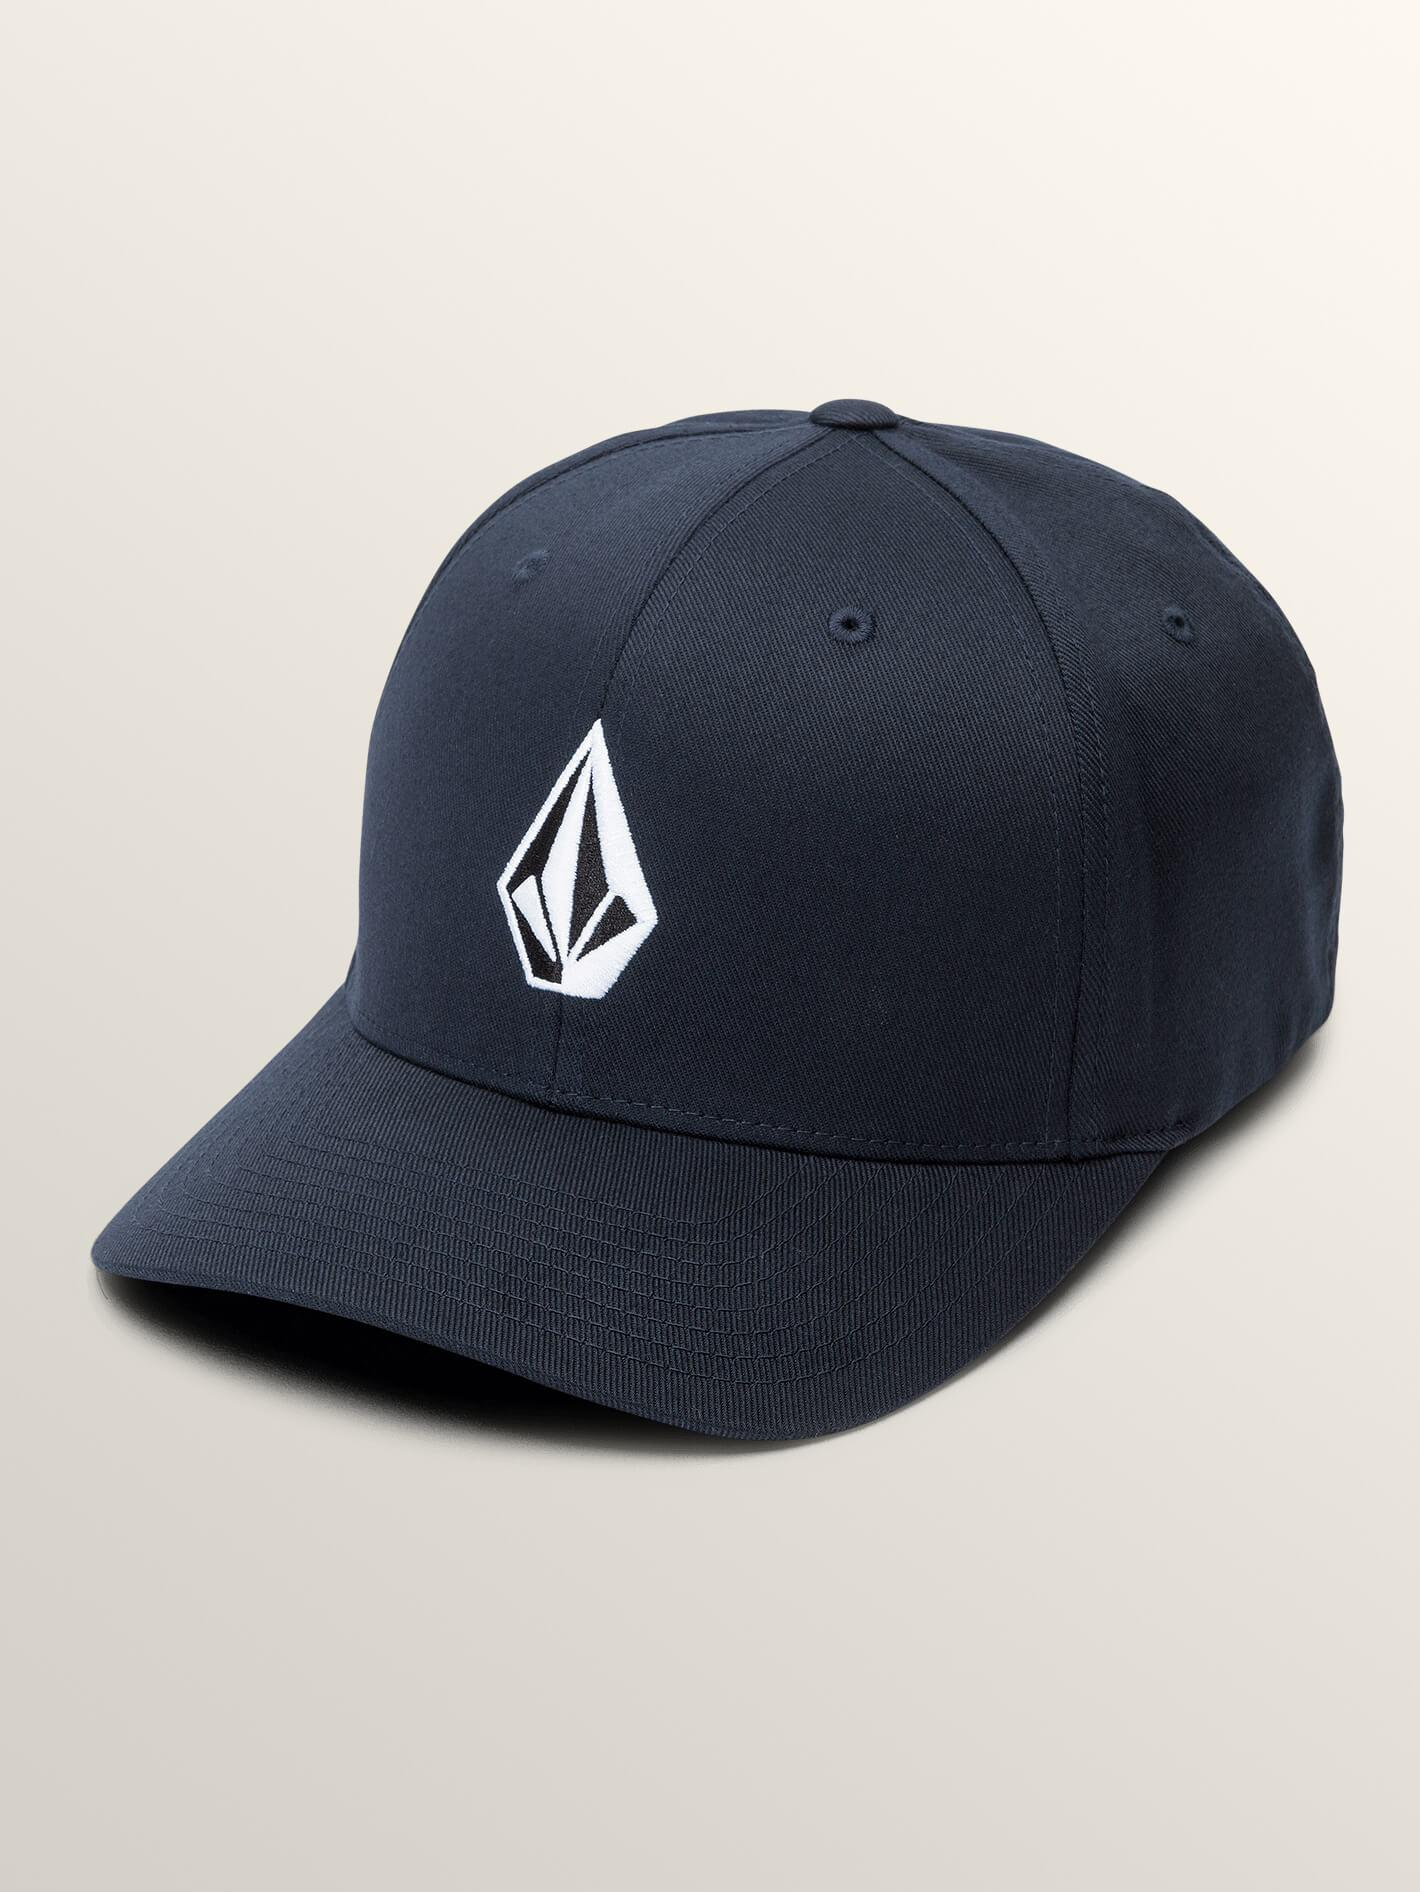 62cbb3adf52 Lyst - Volcom Stone Battery Size Panel Adjustable Hat in Blue for ...